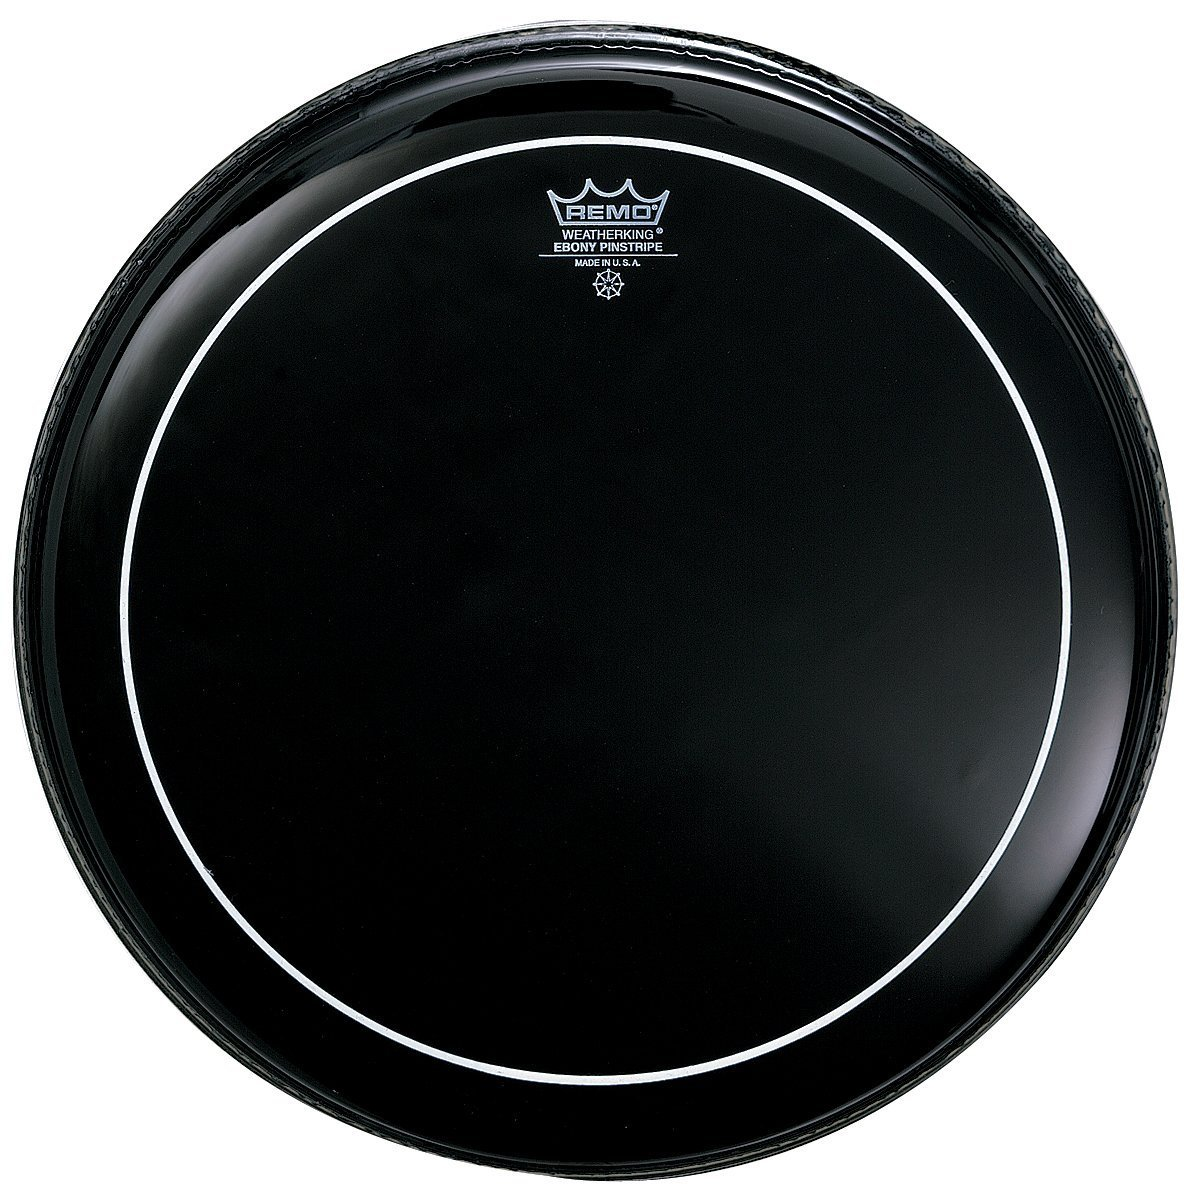 Remo ES0614PS Ebony Pinstripe Drum Head, 14-Inch 71auXy3VgWL